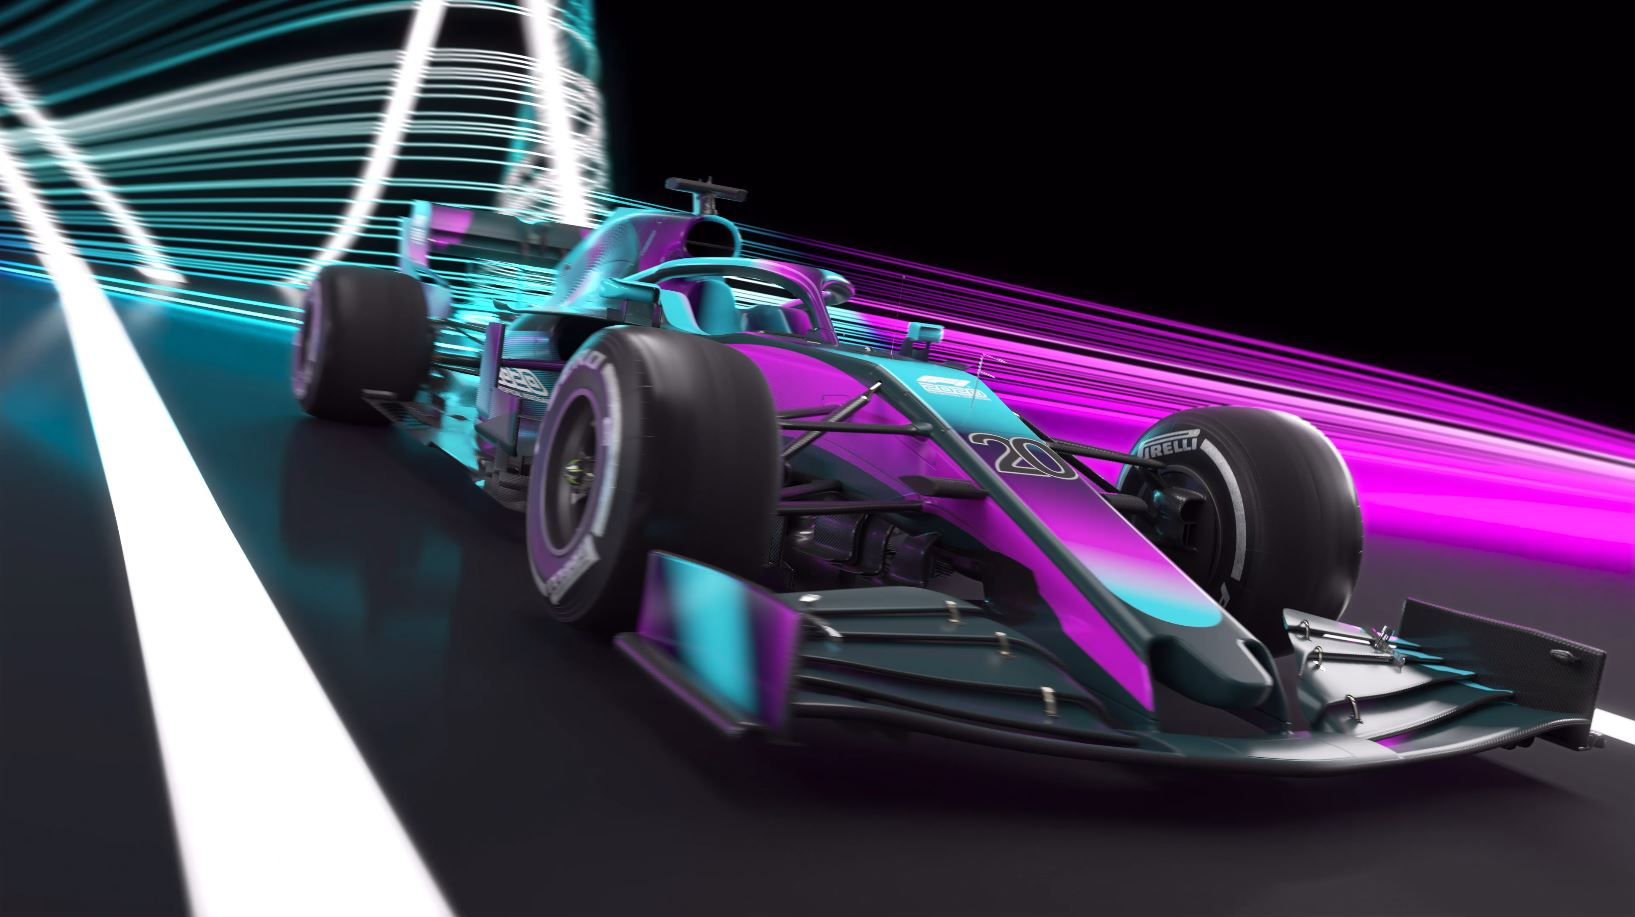 Be The Grid S 11th Team With The New F1 2020 Videogame